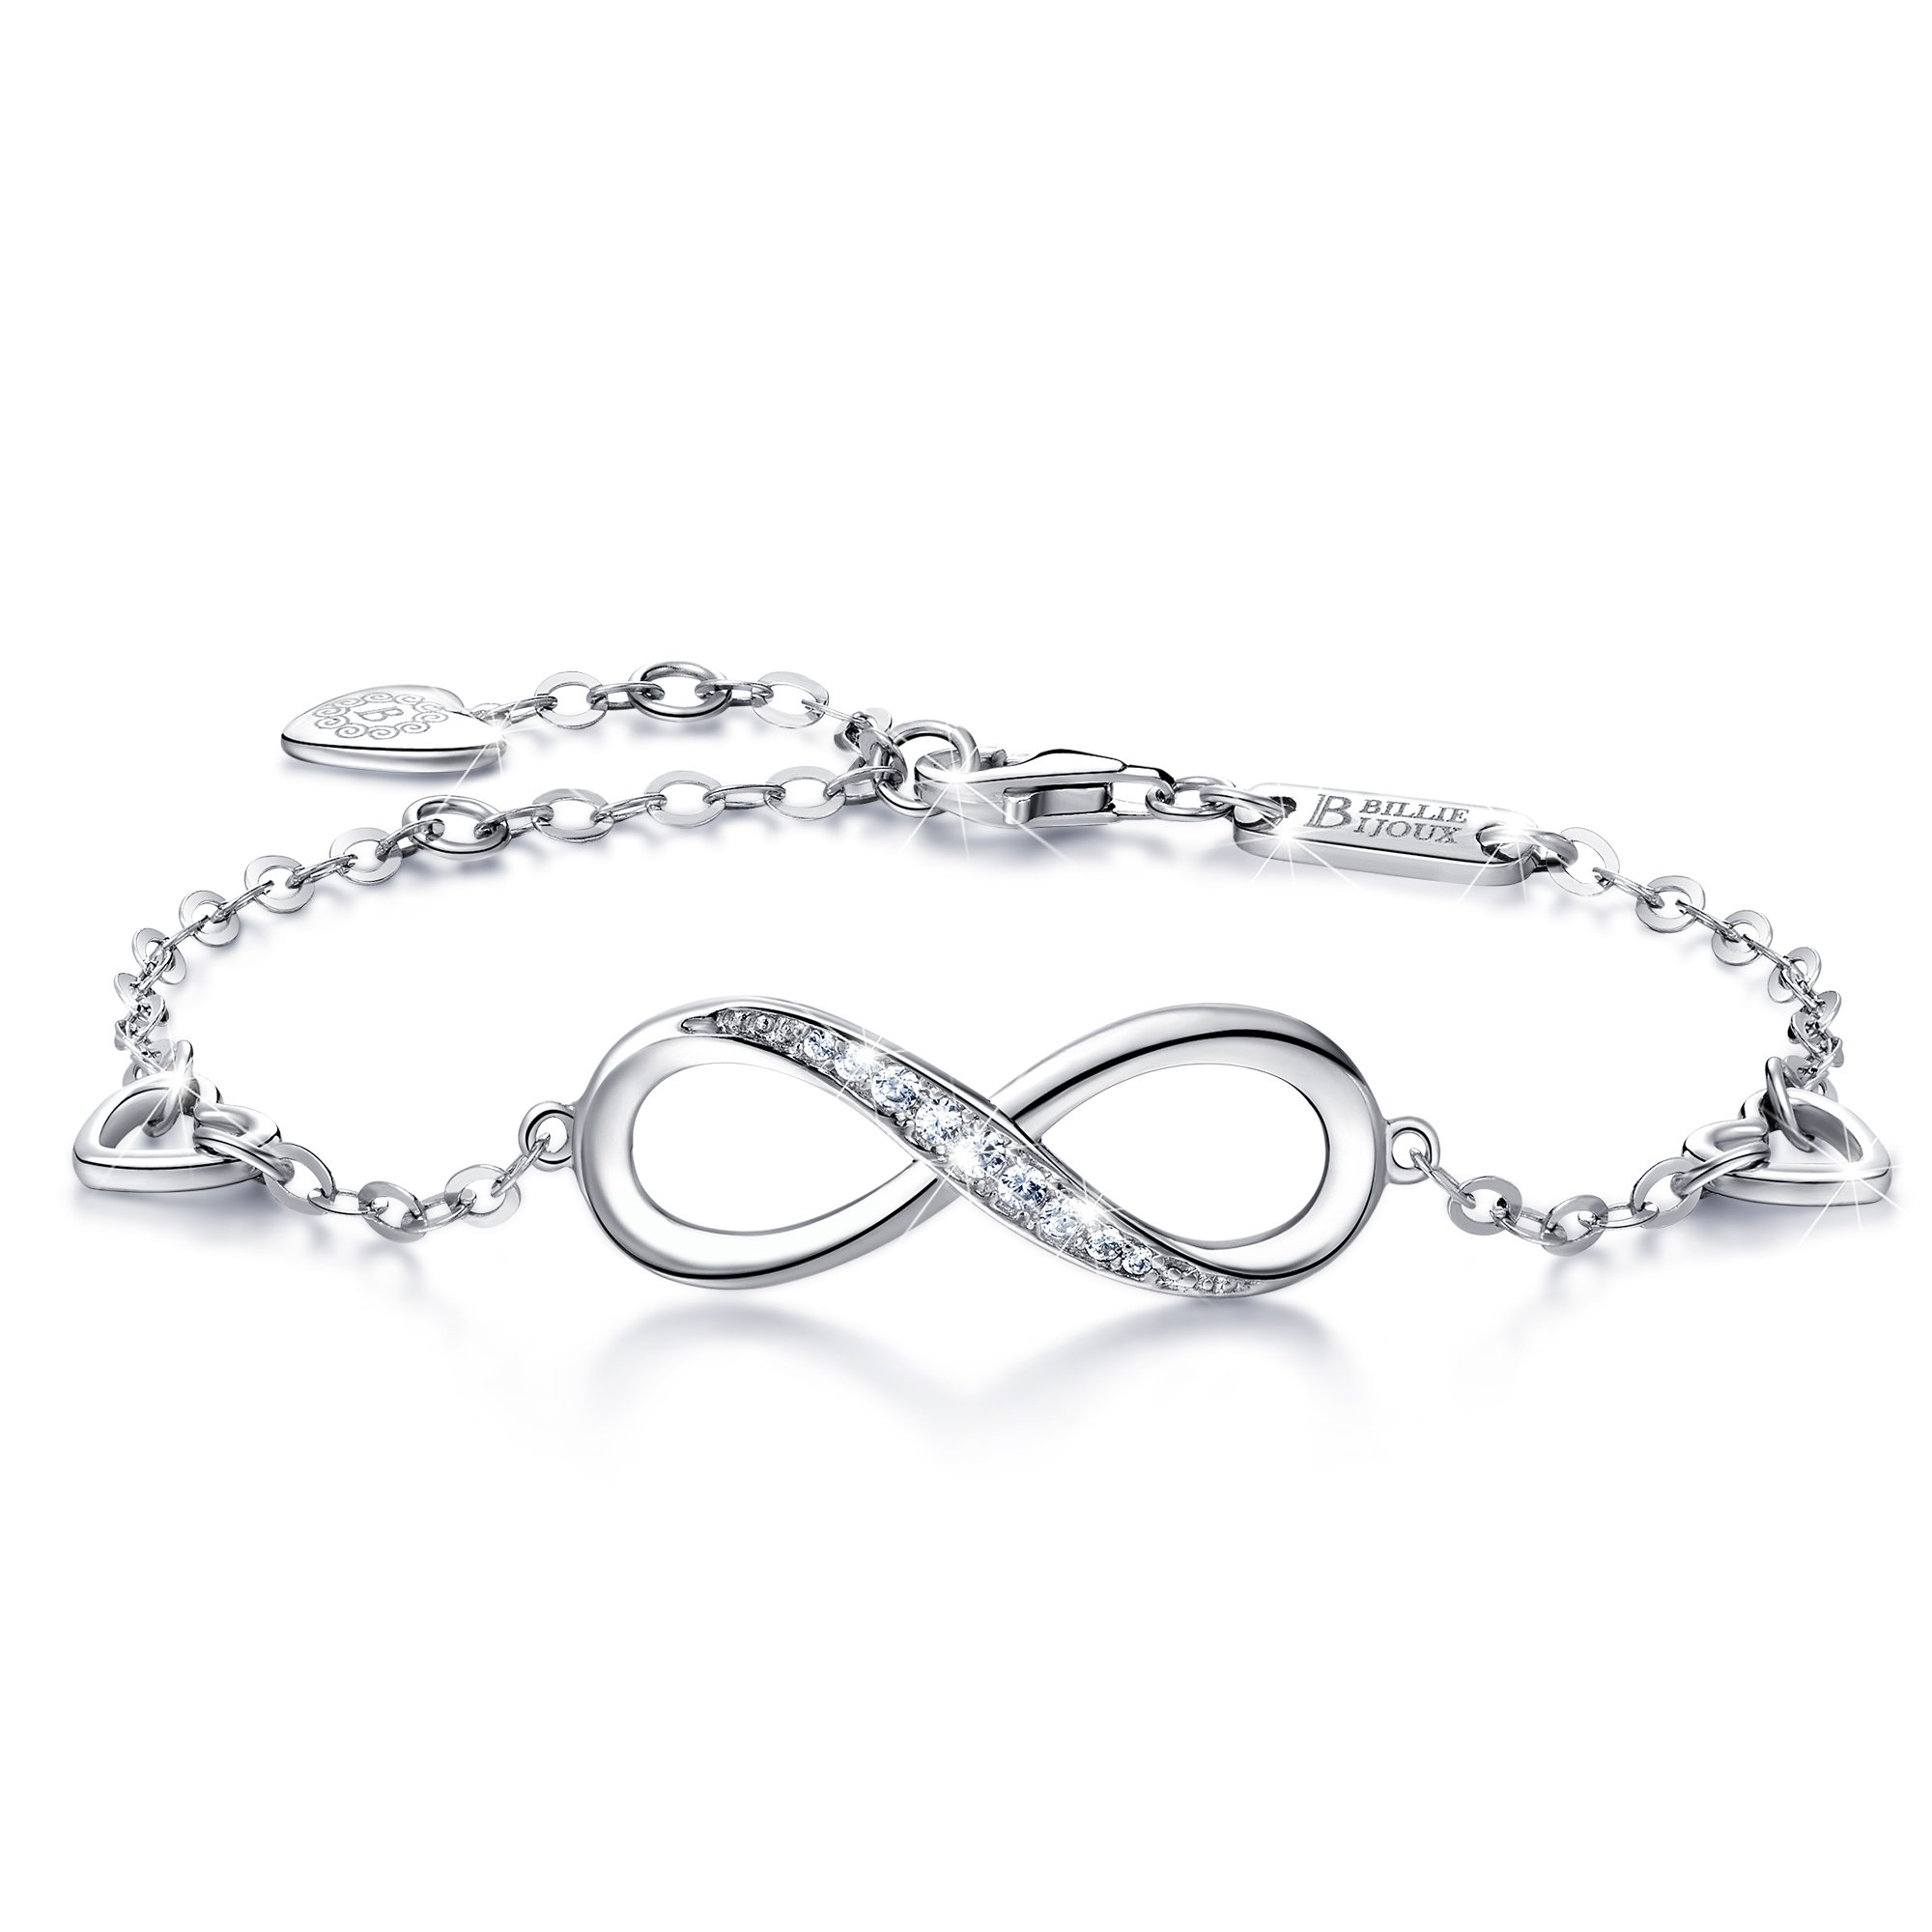 Billie Bijoux Womens 925 Sterling Silver Infinity Endless Love Symbol Charm Adjustable Bracelet Gift for Women Girls (A- Silver) by Billie Bijoux